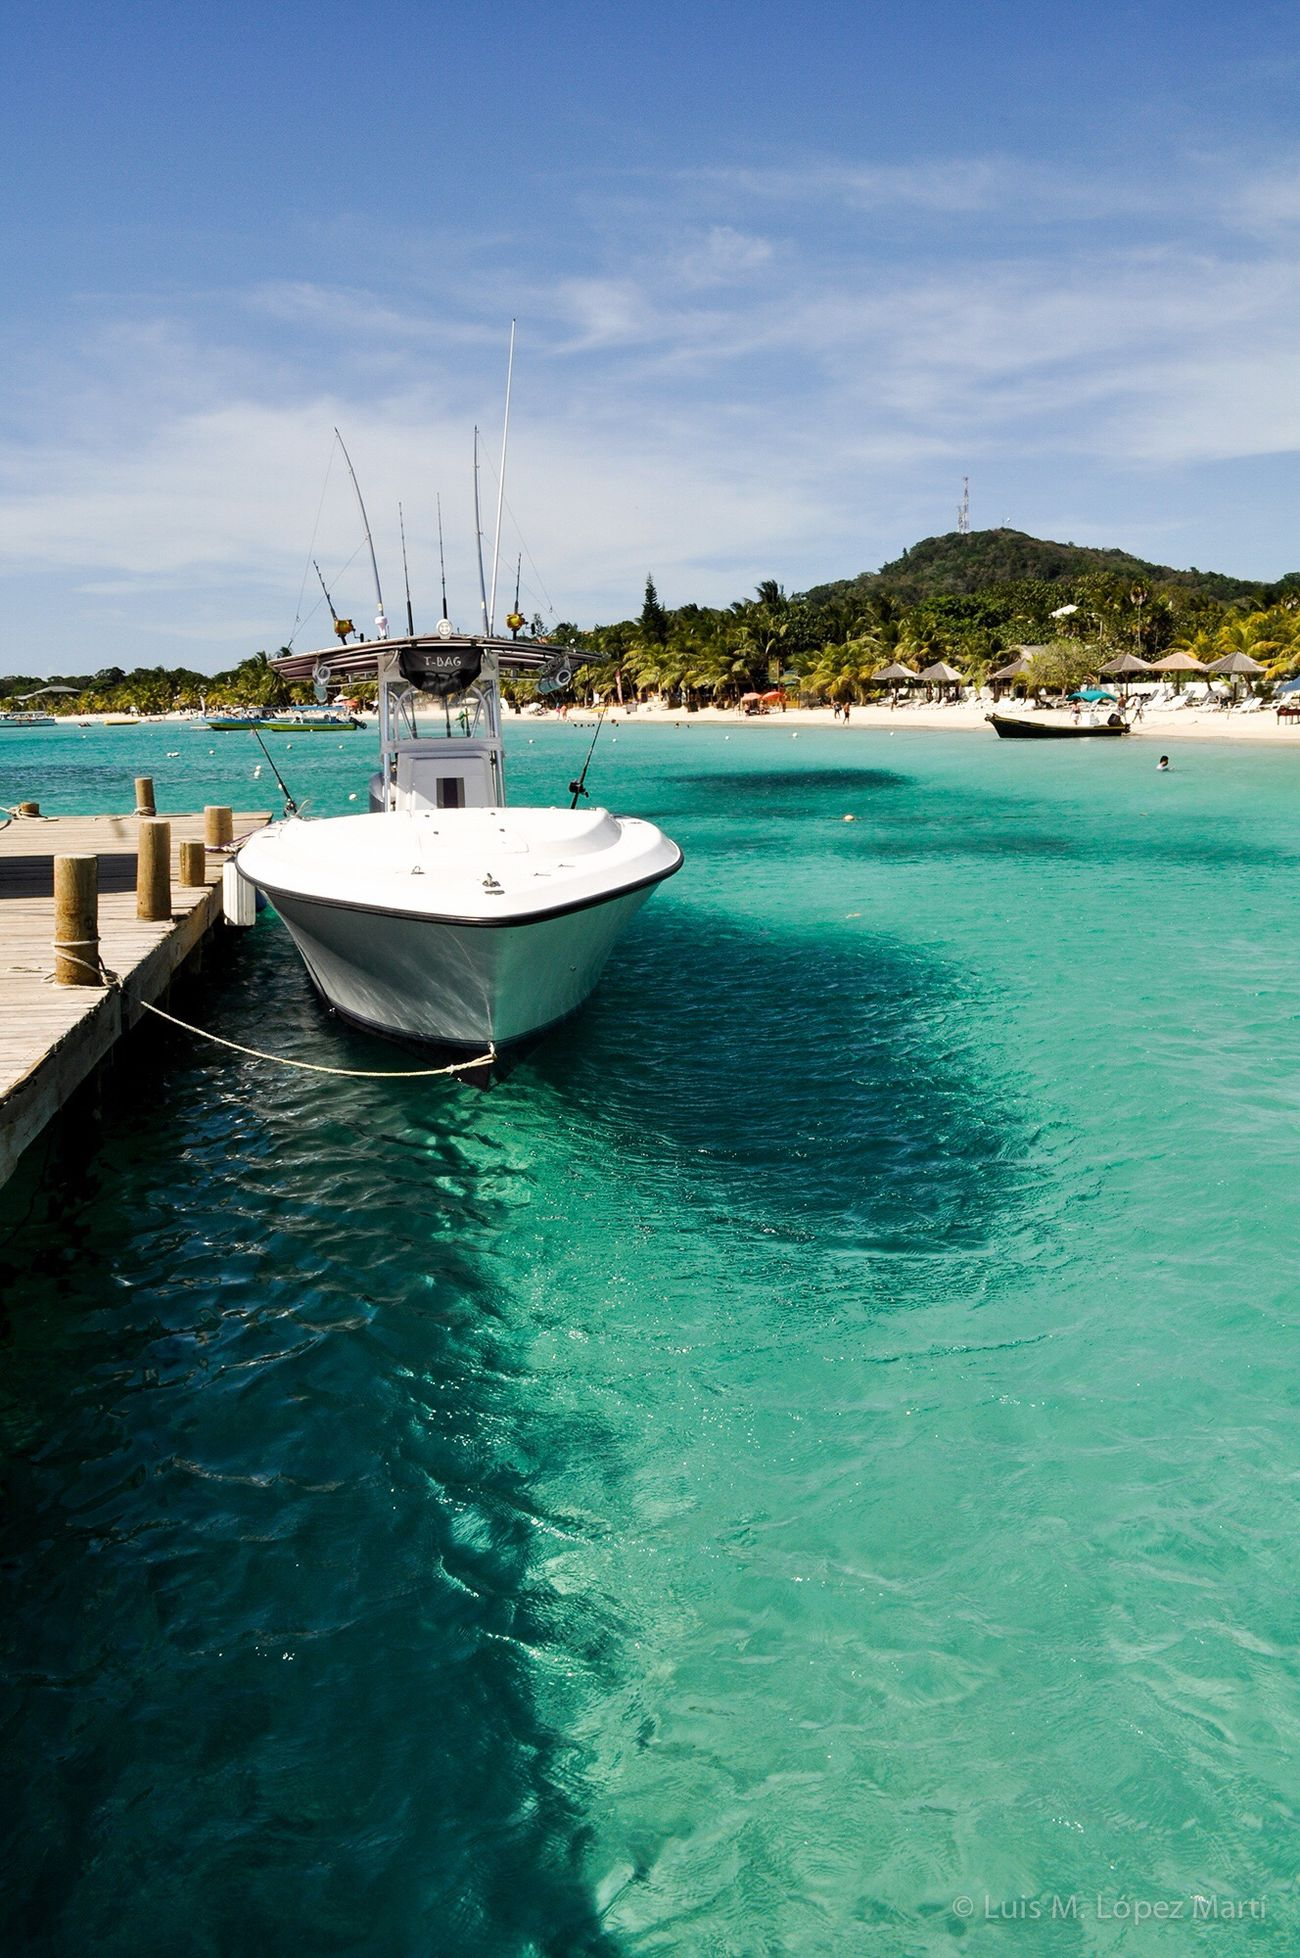 Roatan Honduras Sea Sky Blue Beauty In Nature Color Colorful Traveling Travel Travel Destinations Travel Photography Beach Beachphotography Island Tranquility Tranquil Scene